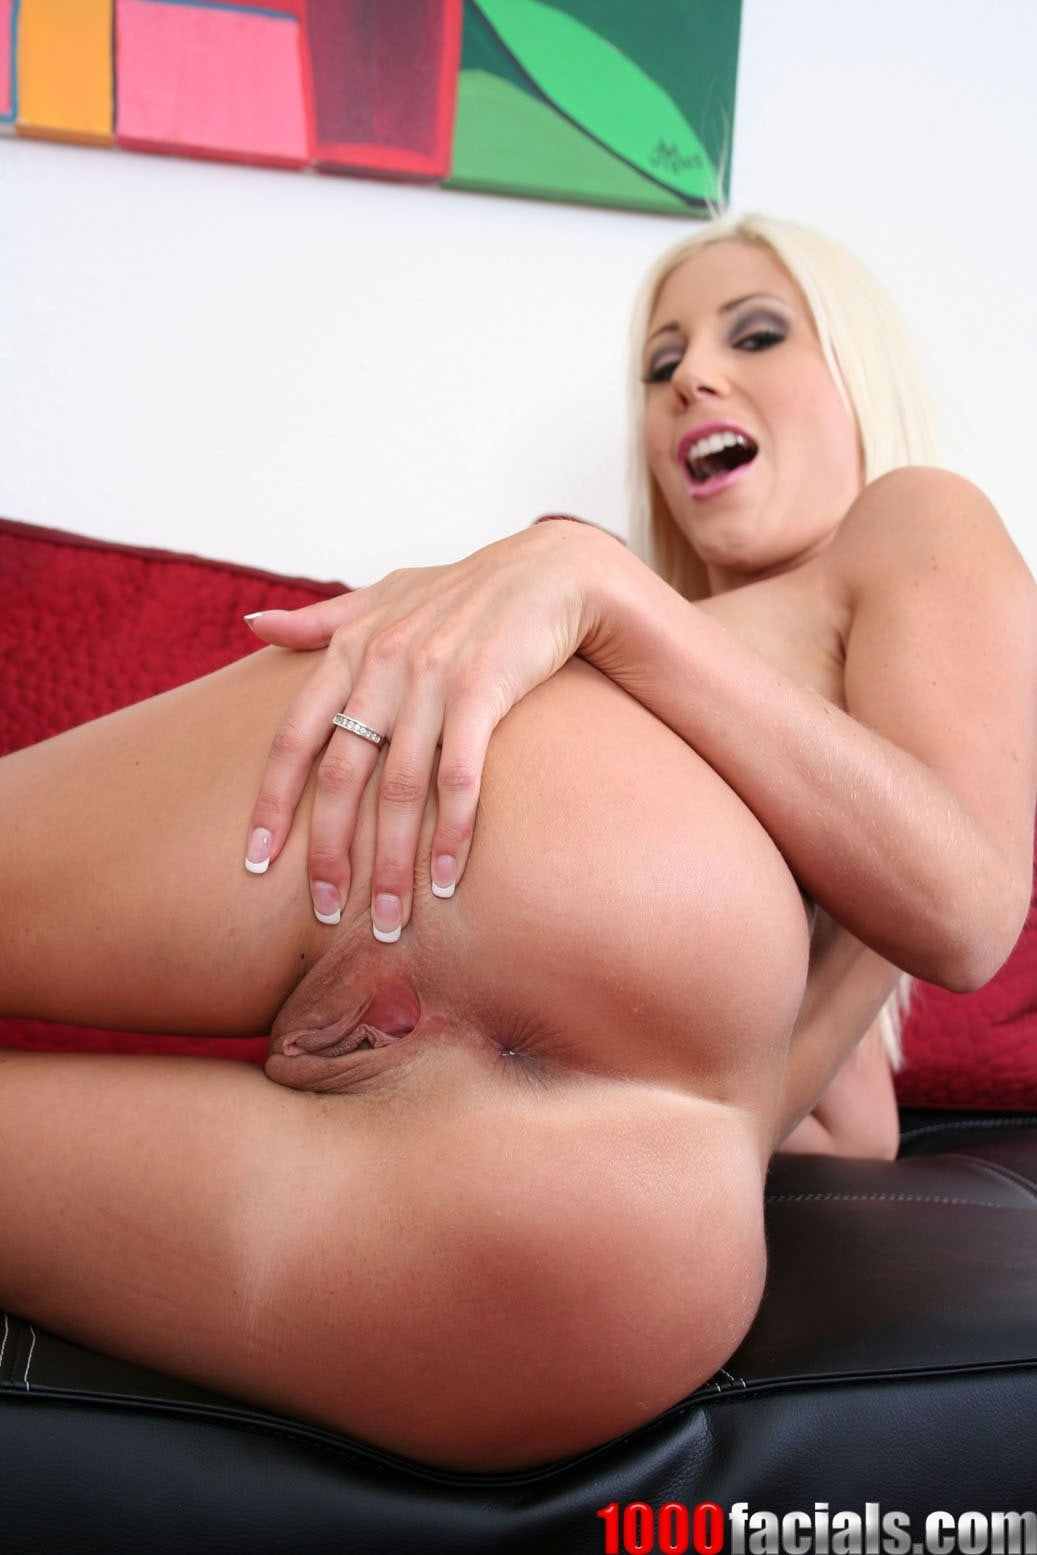 Hd milf pictures #1